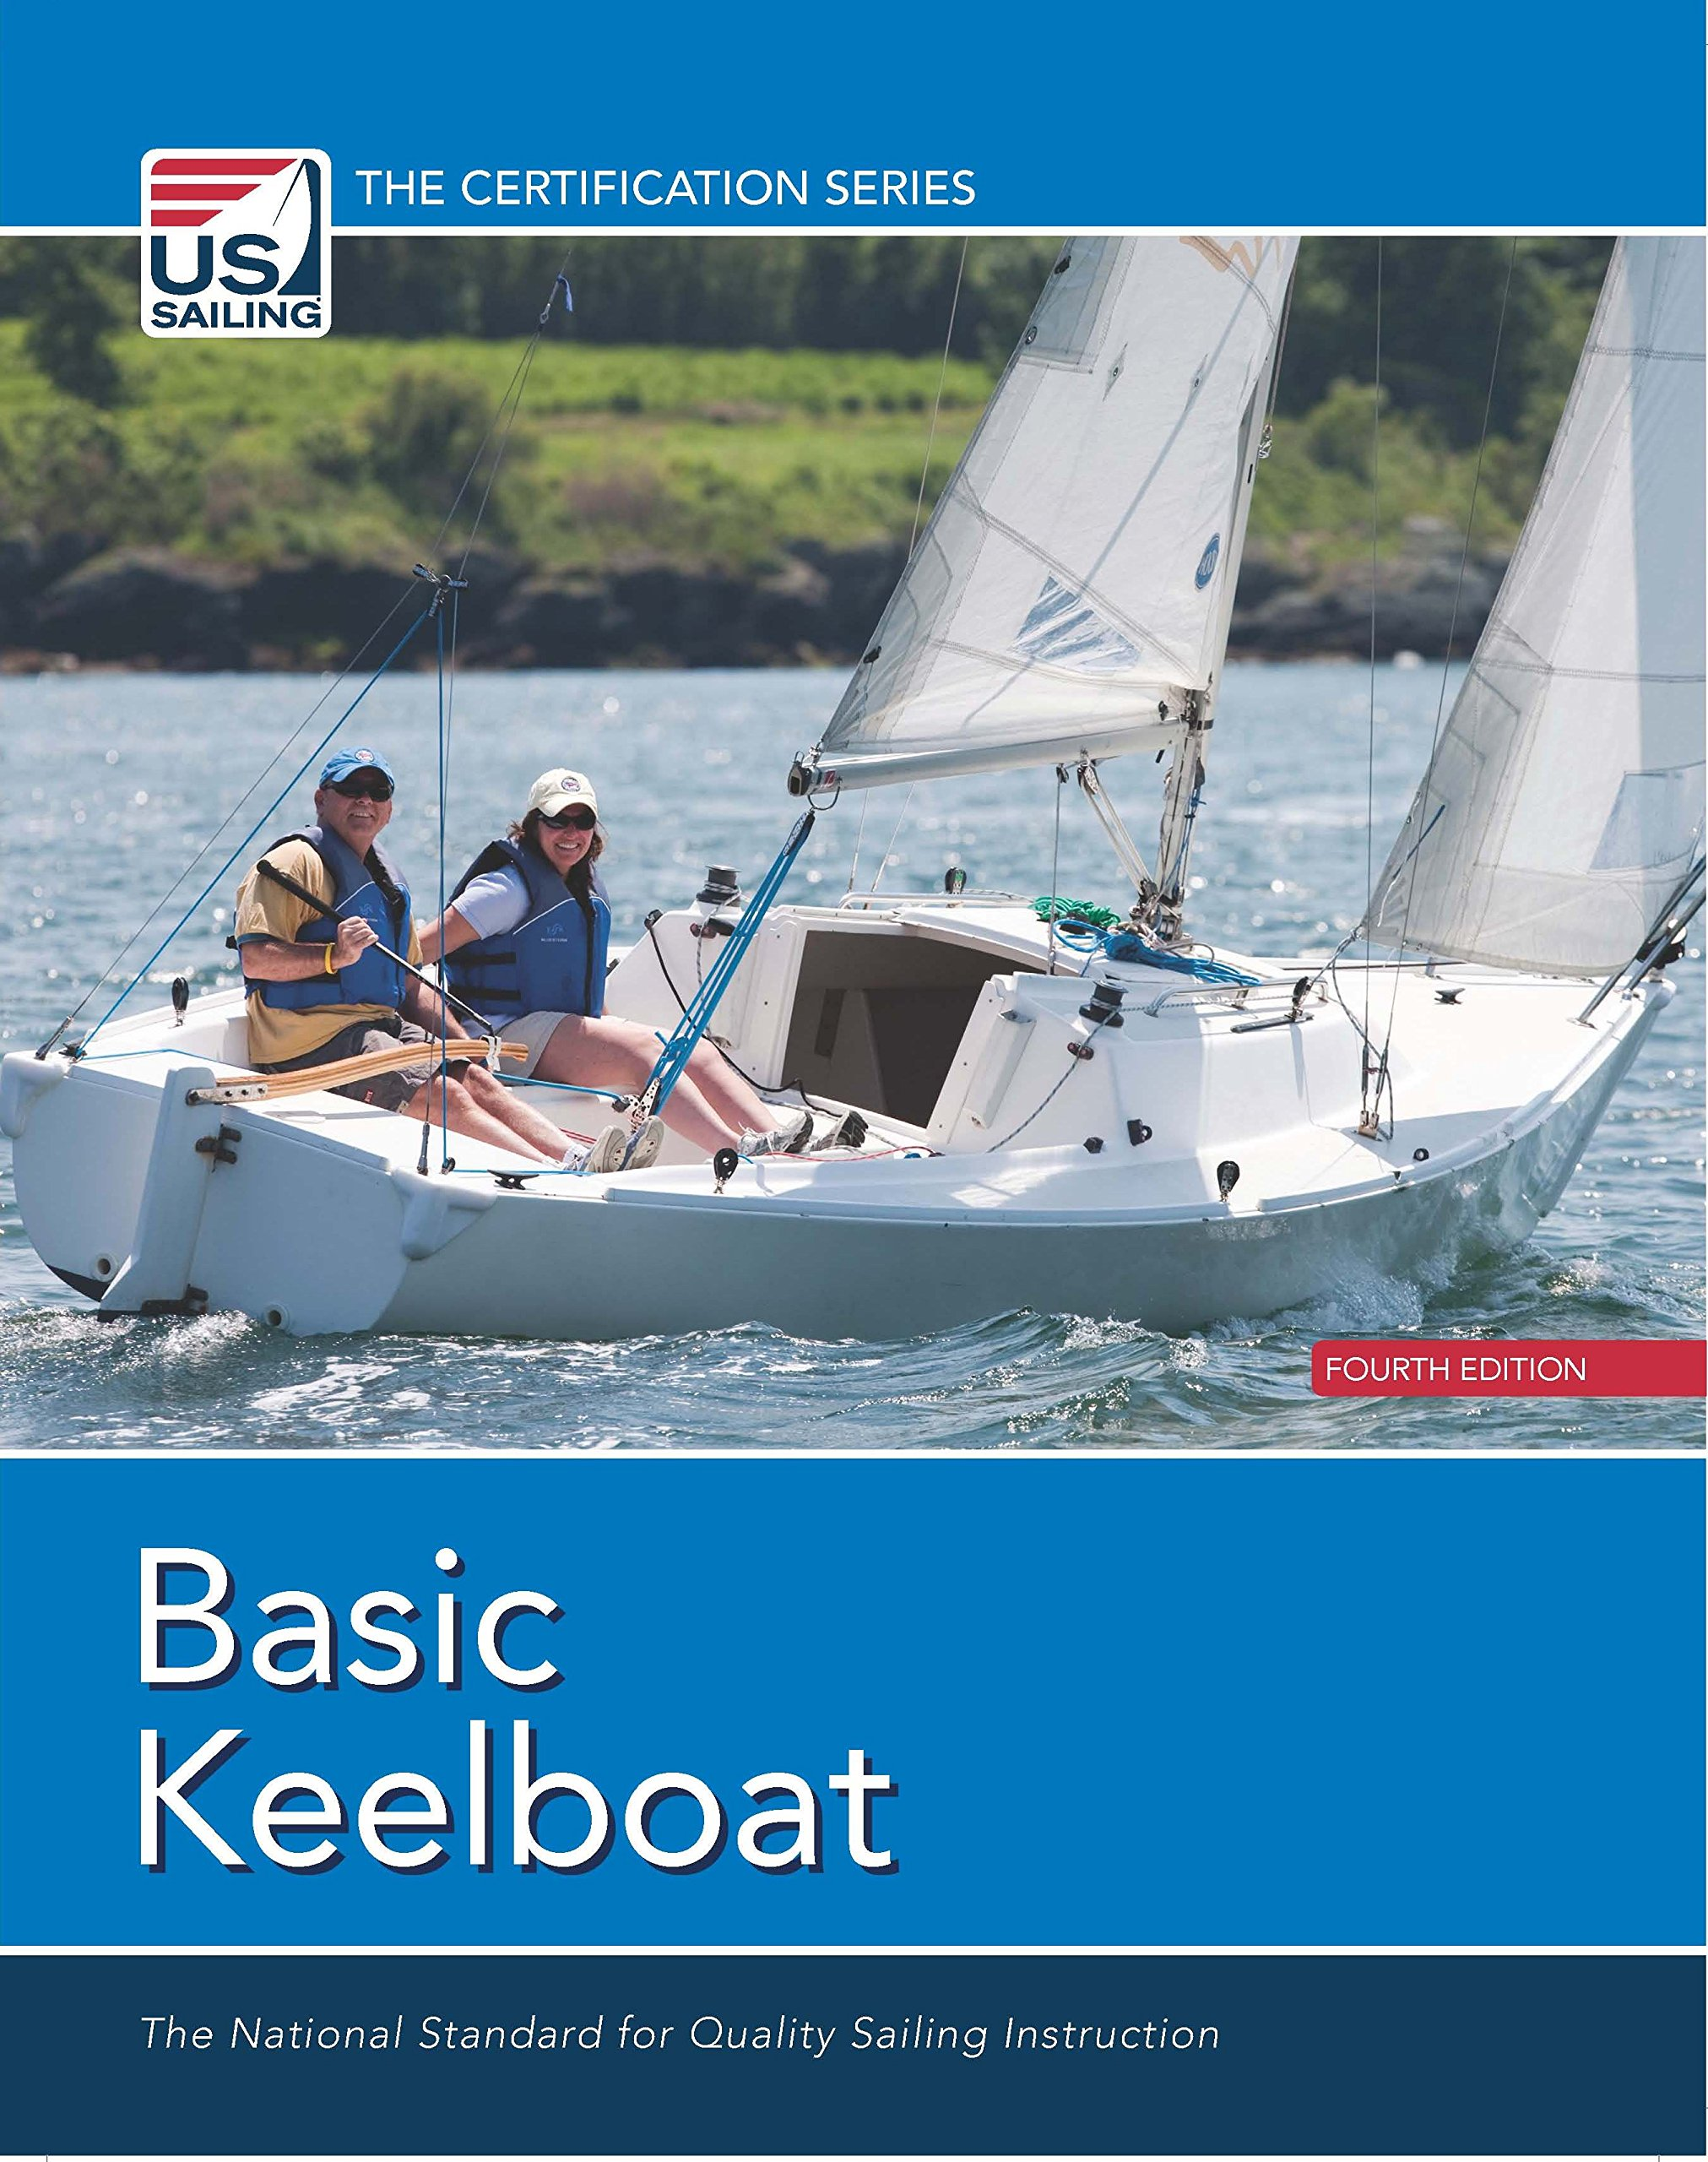 Basic keelboat the national standard for quality sailing instructions 1betcityfo Choice Image